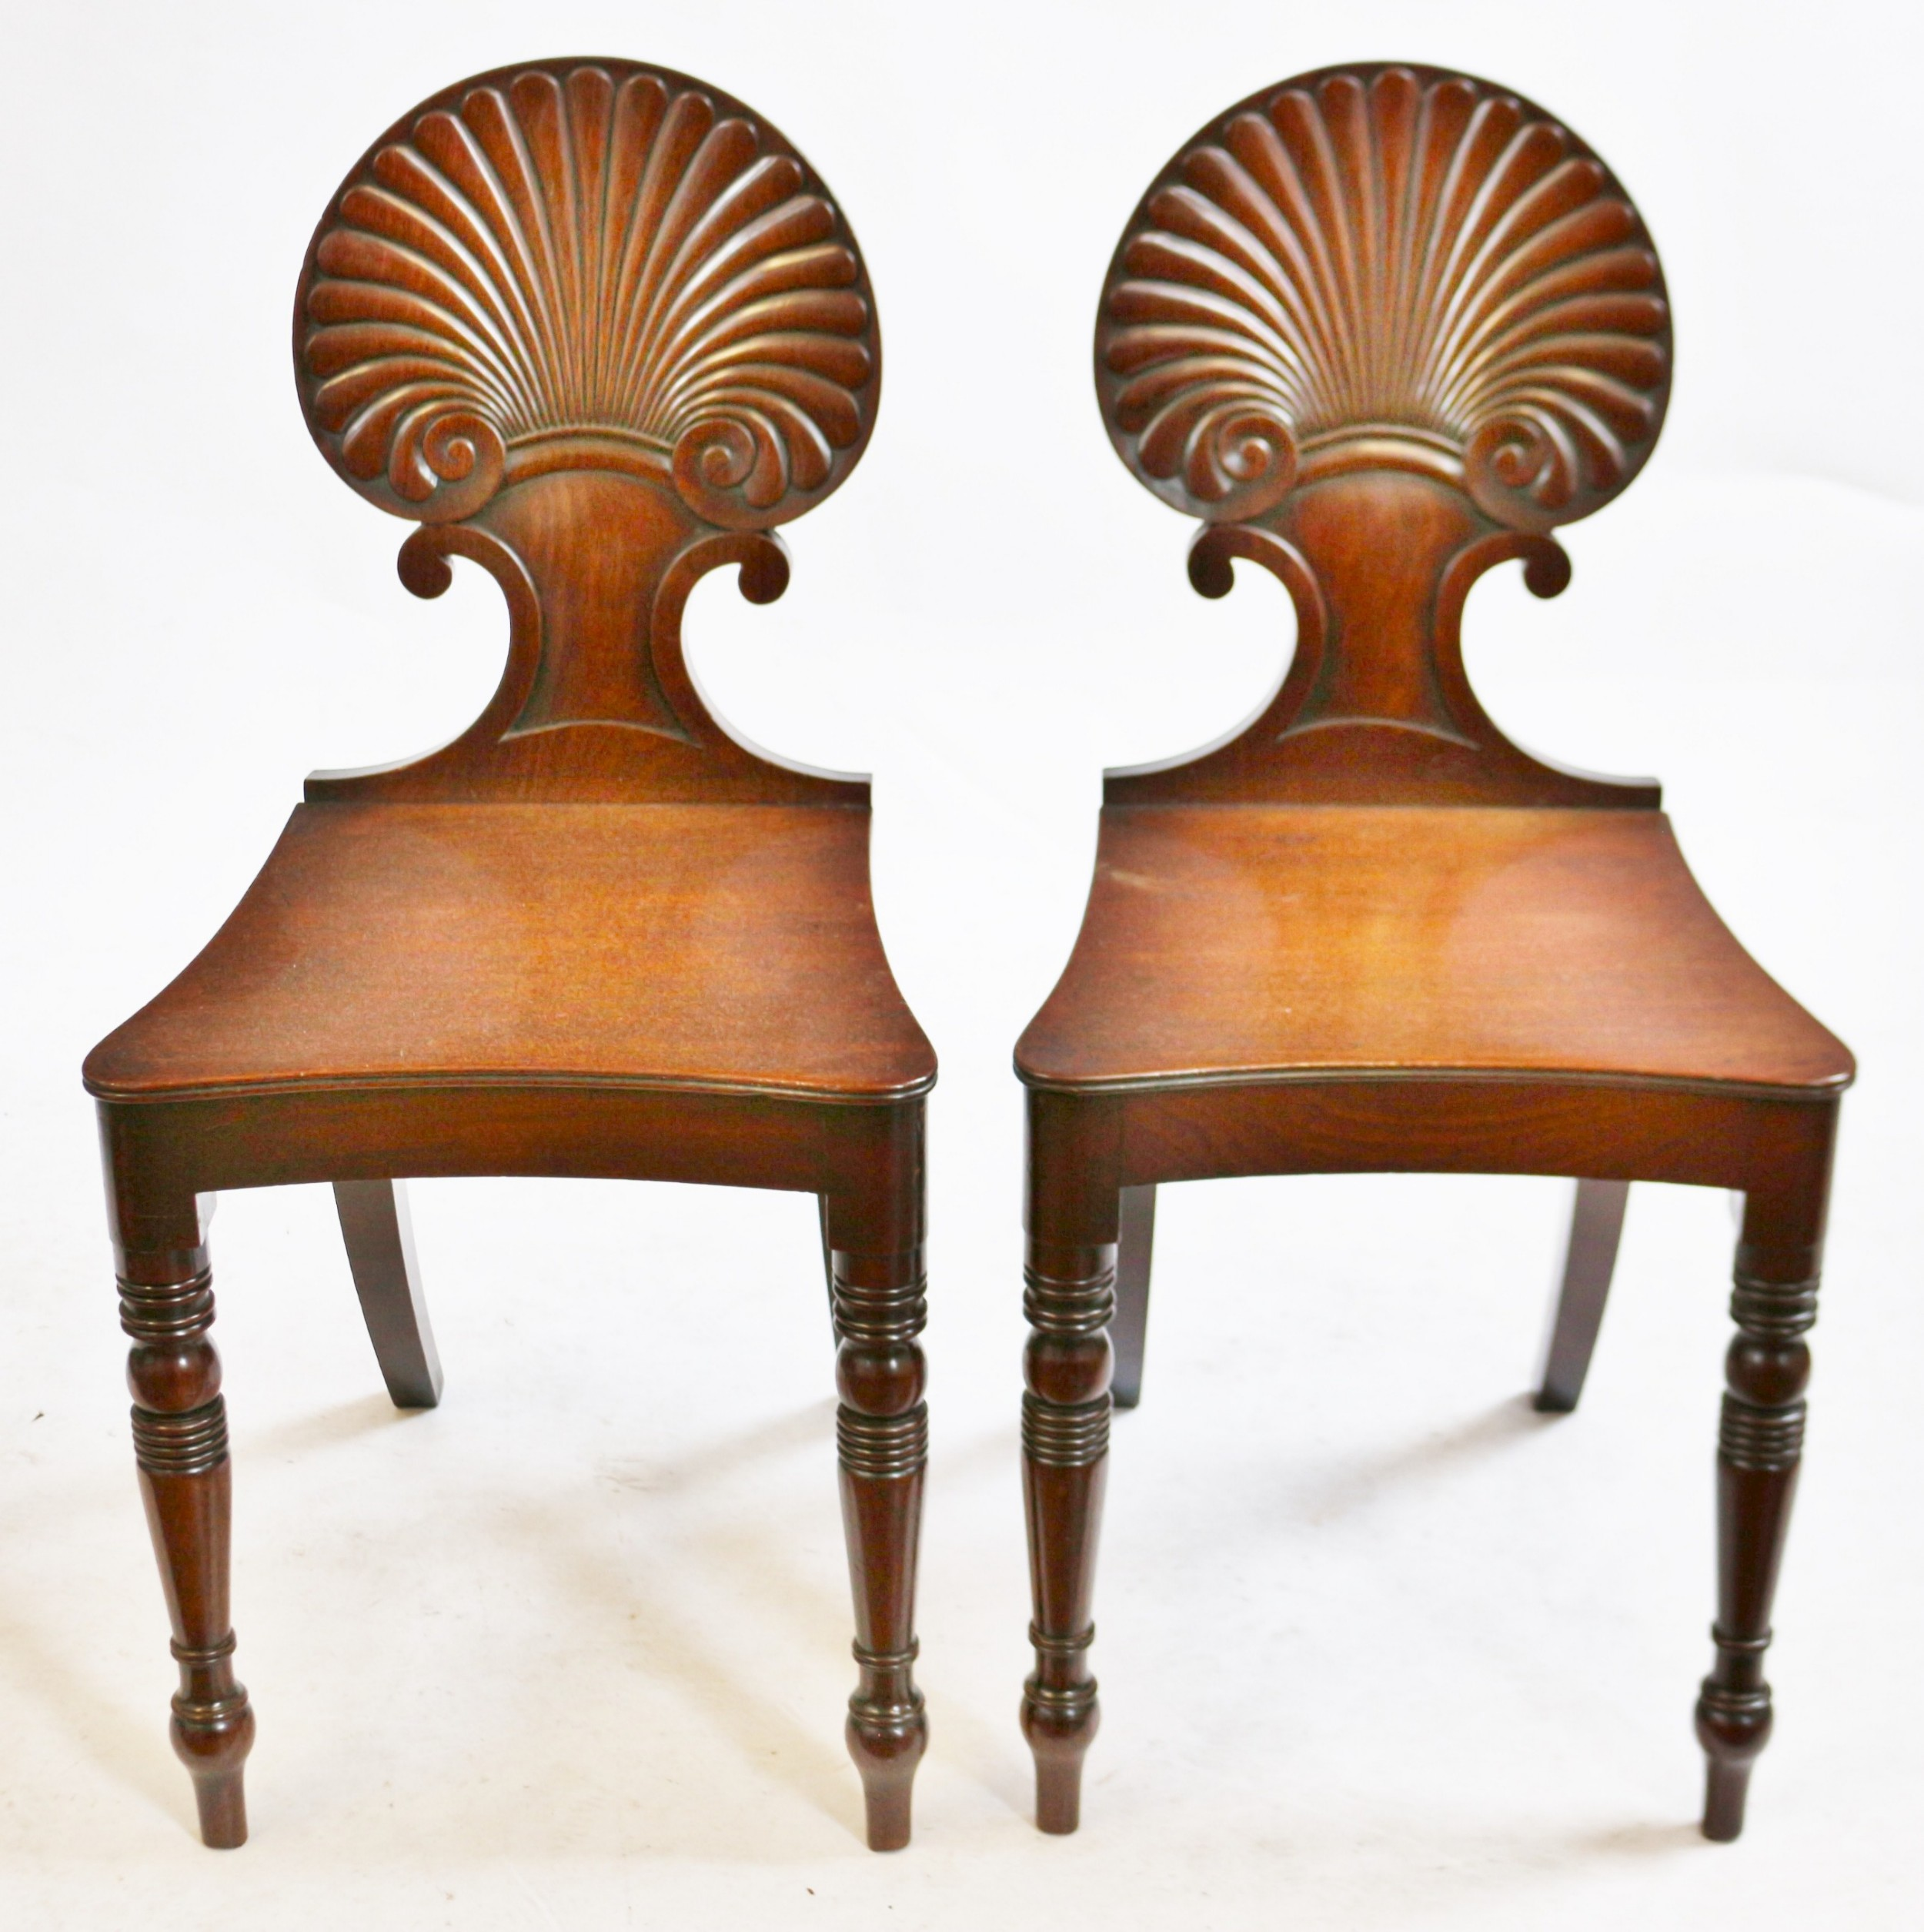 regency mahogany pair of hall chairs with shell carved back